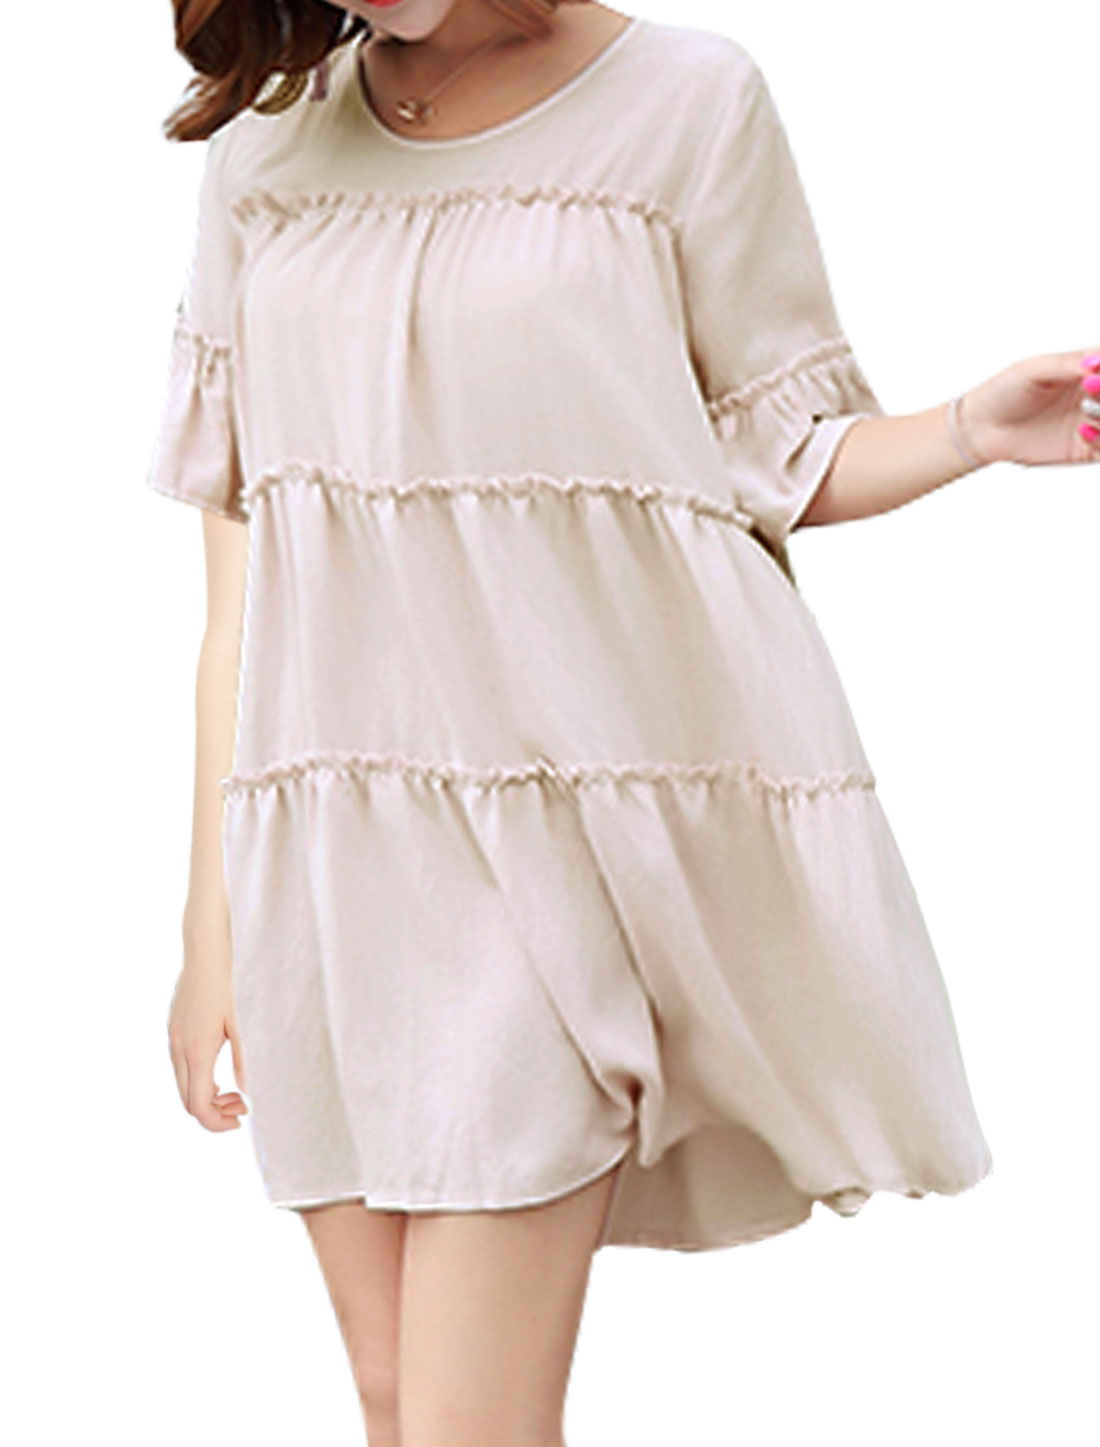 Women Half Bell Sleeve Ruched Round Neck Mini A-Line Dress Pink XS